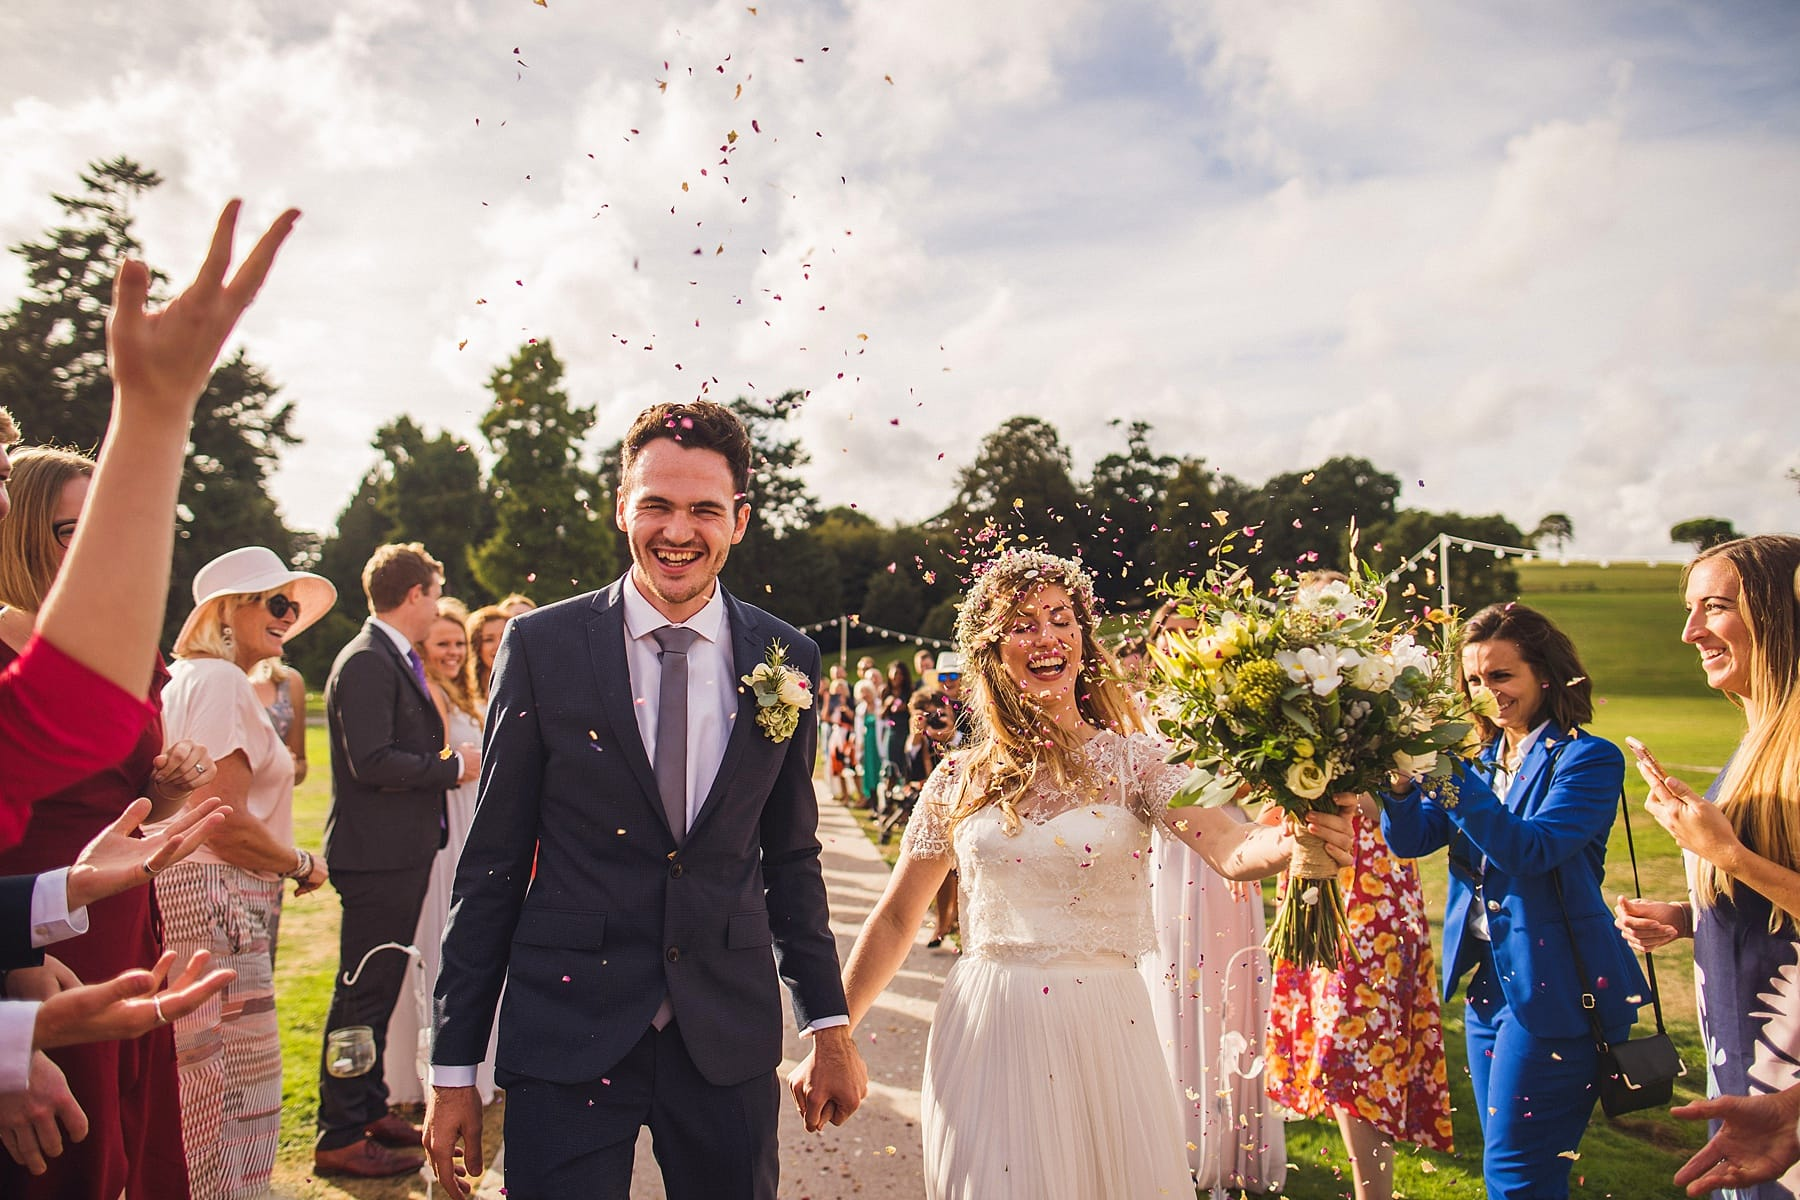 ireland wedding photographer,dublin city wedding,langton house hotel,port eliot cornwall wedding,lough shore antrim,woodland engagement,confetti shot,luttrelstown castle,ivory pavilion,